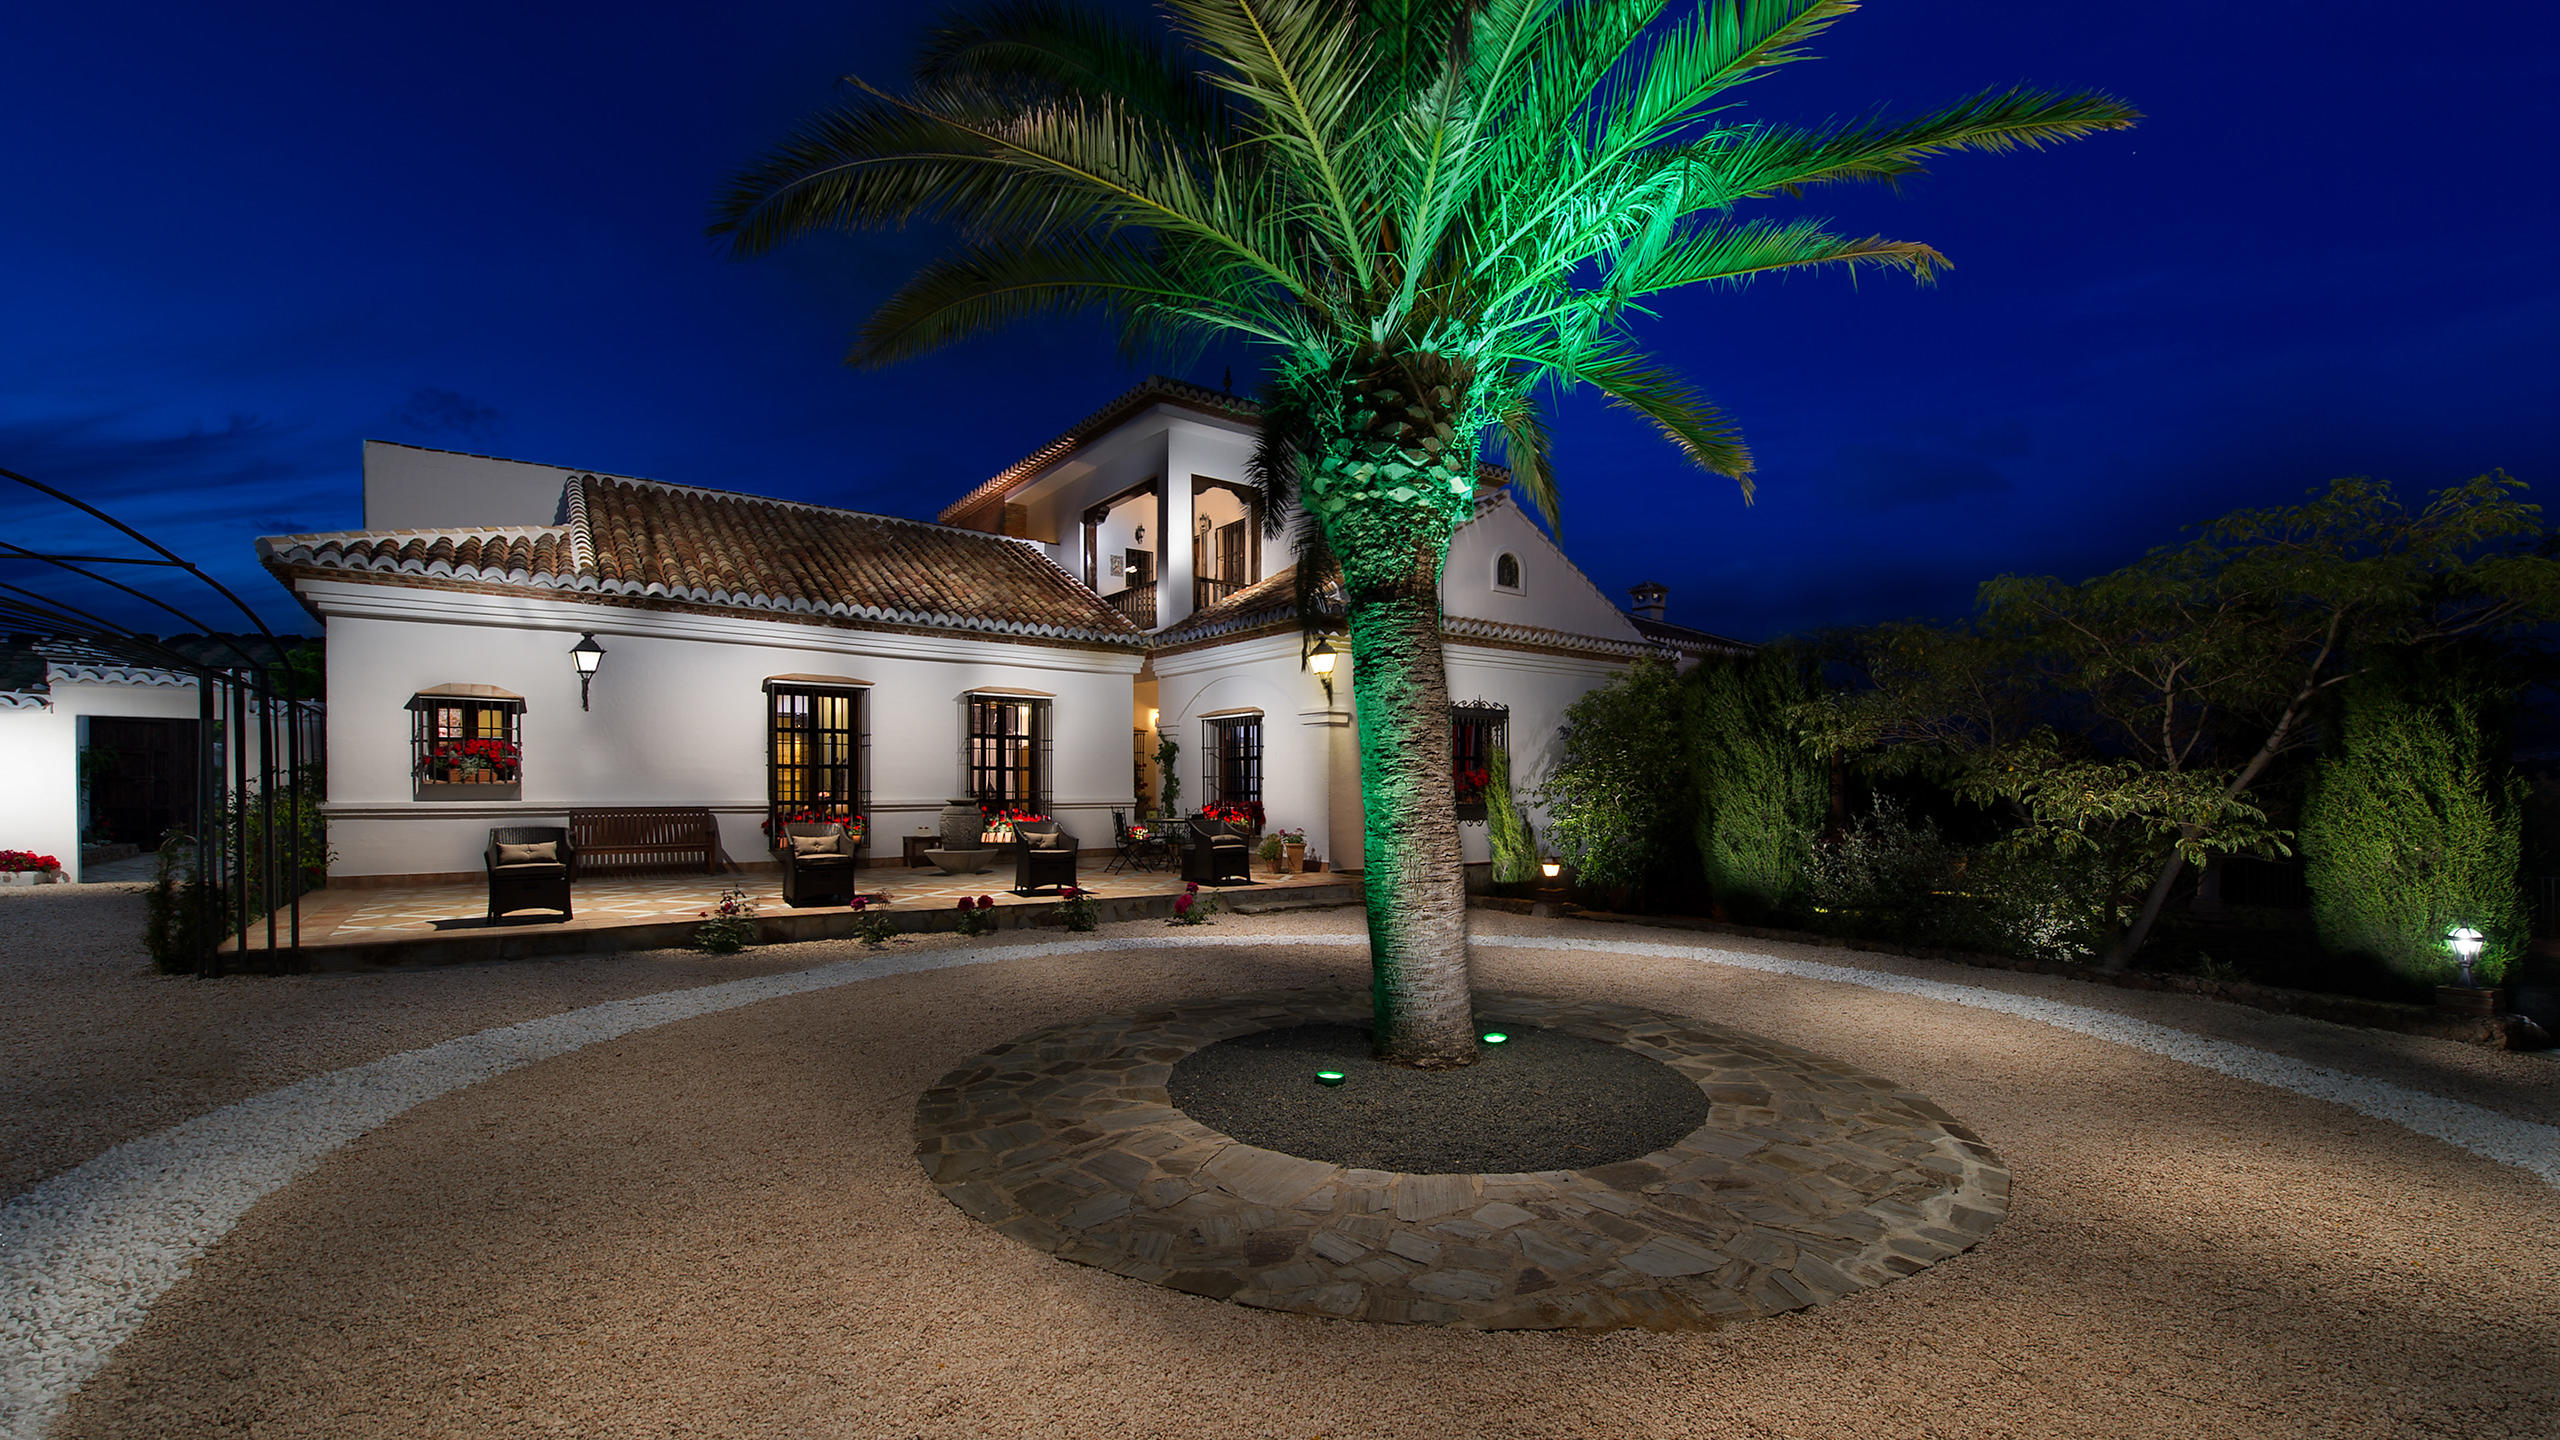 Luxury Villa Hotel by night in Andalucia, Spain